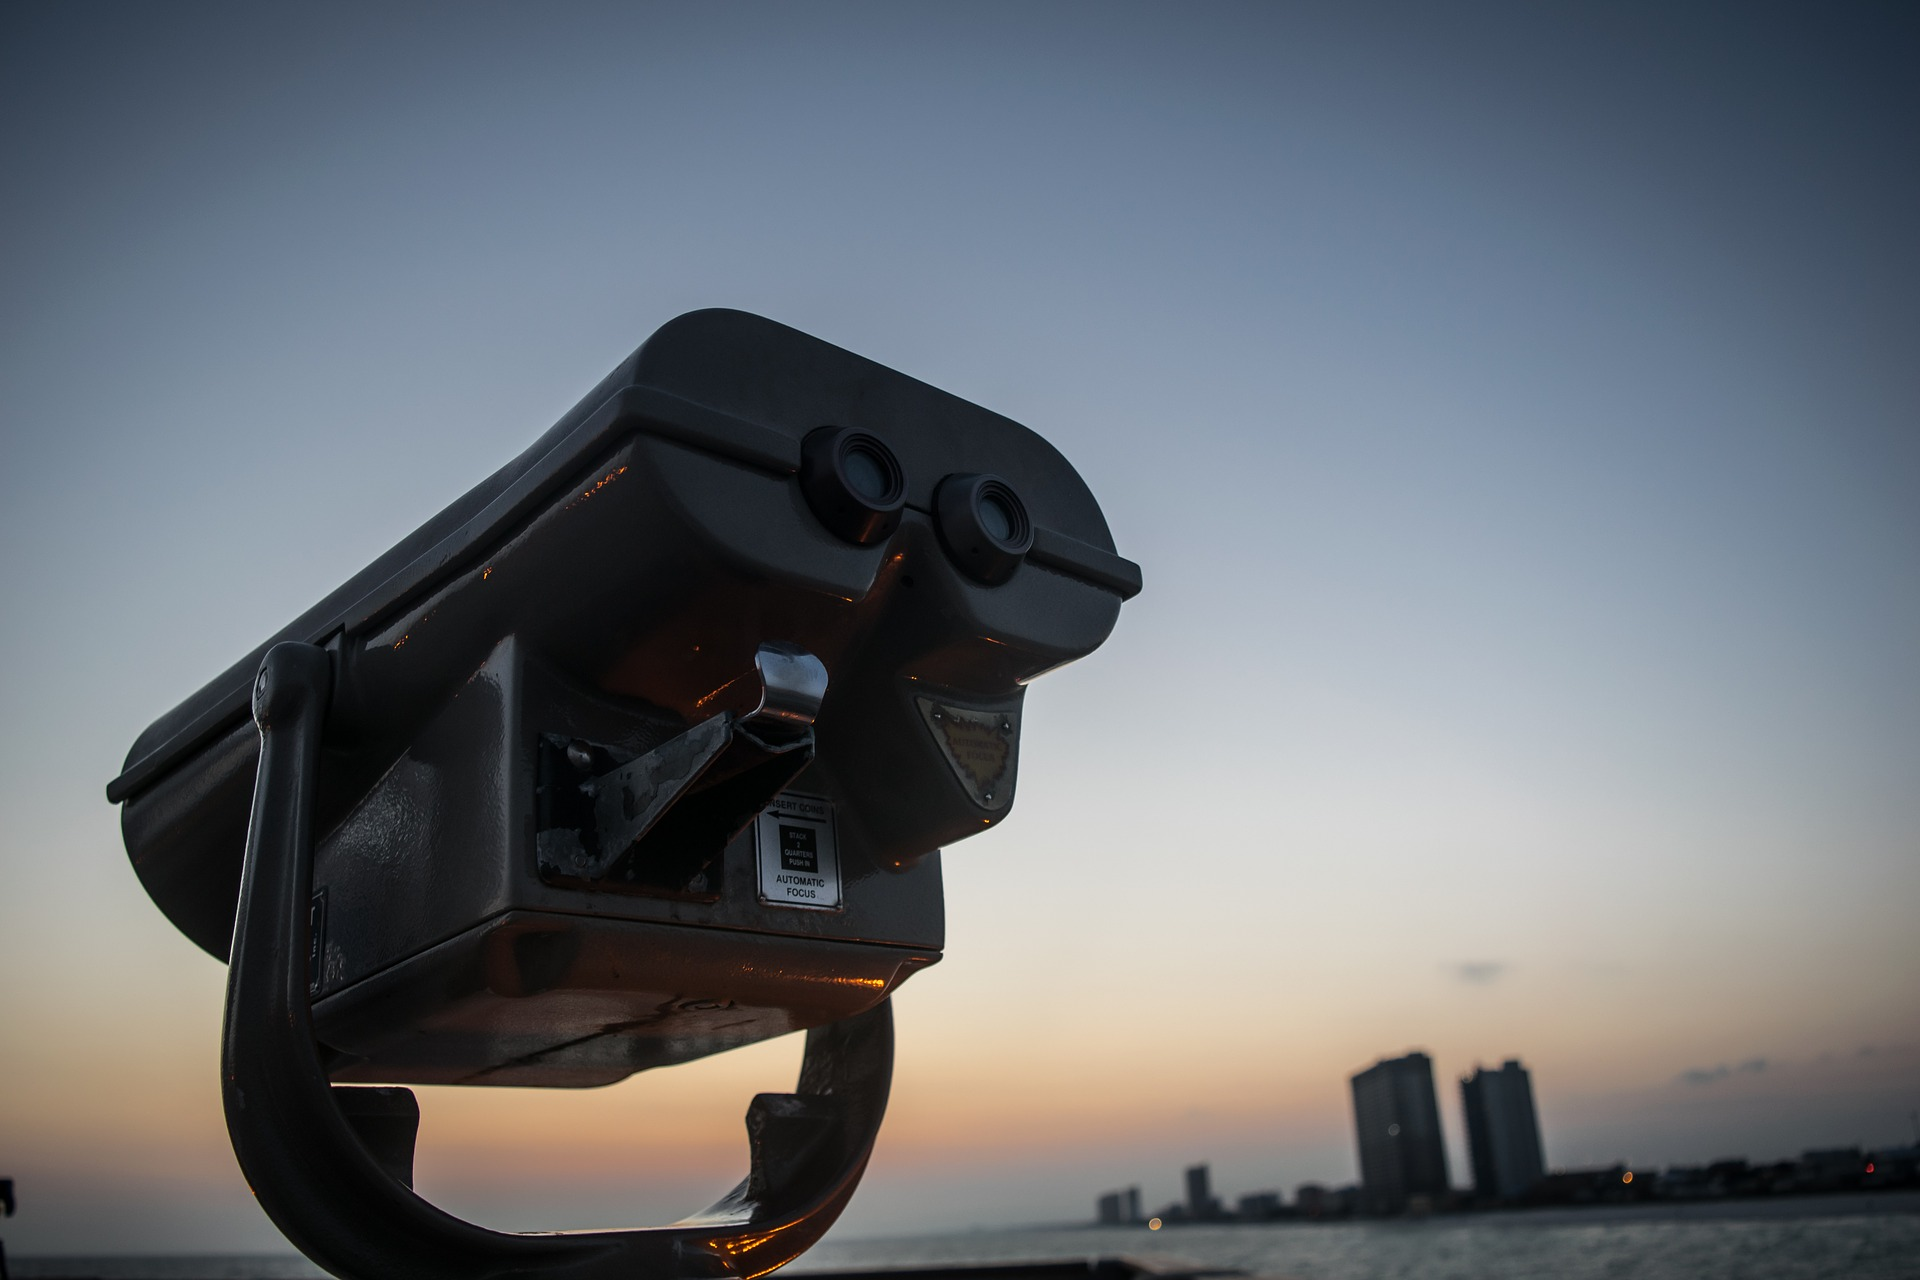 Coin operated binoculars overlooking water and city at dusk